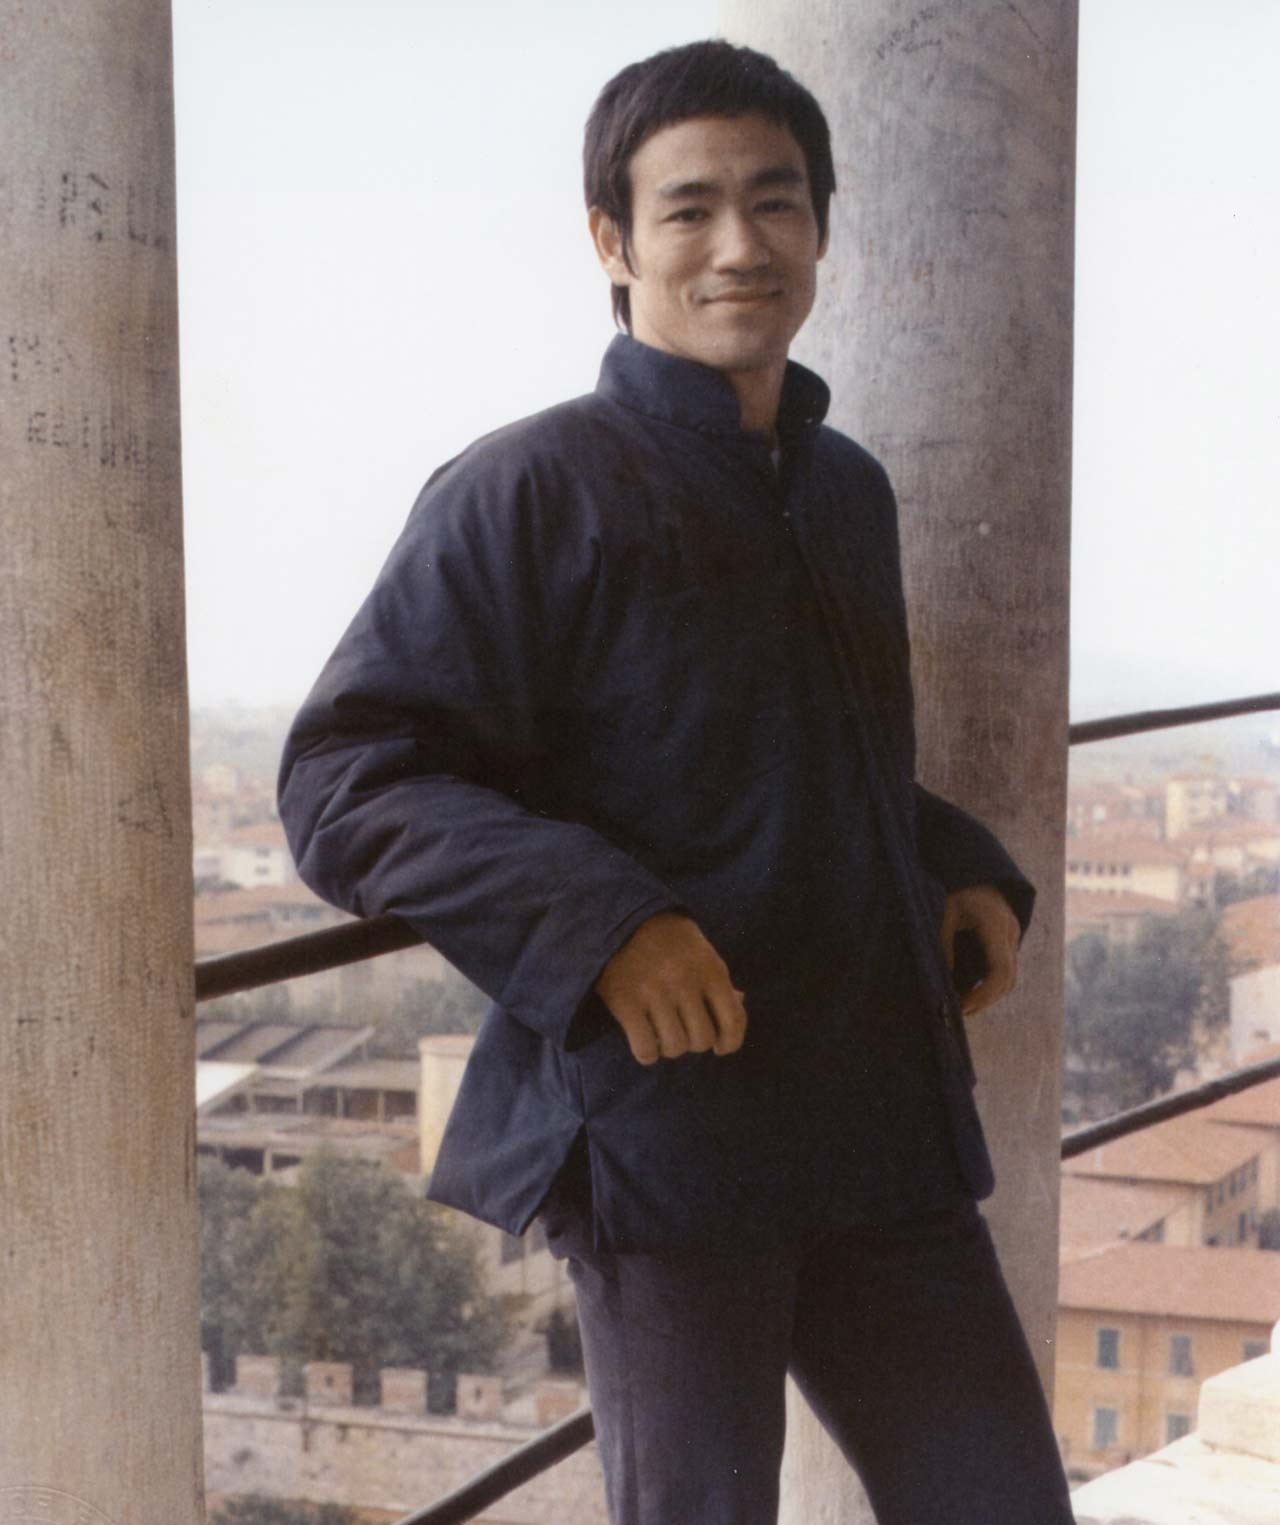 Color photo of martial artist, philosophist, actor, writer, director and producer, Bruce Lee Jun Fan in Rome